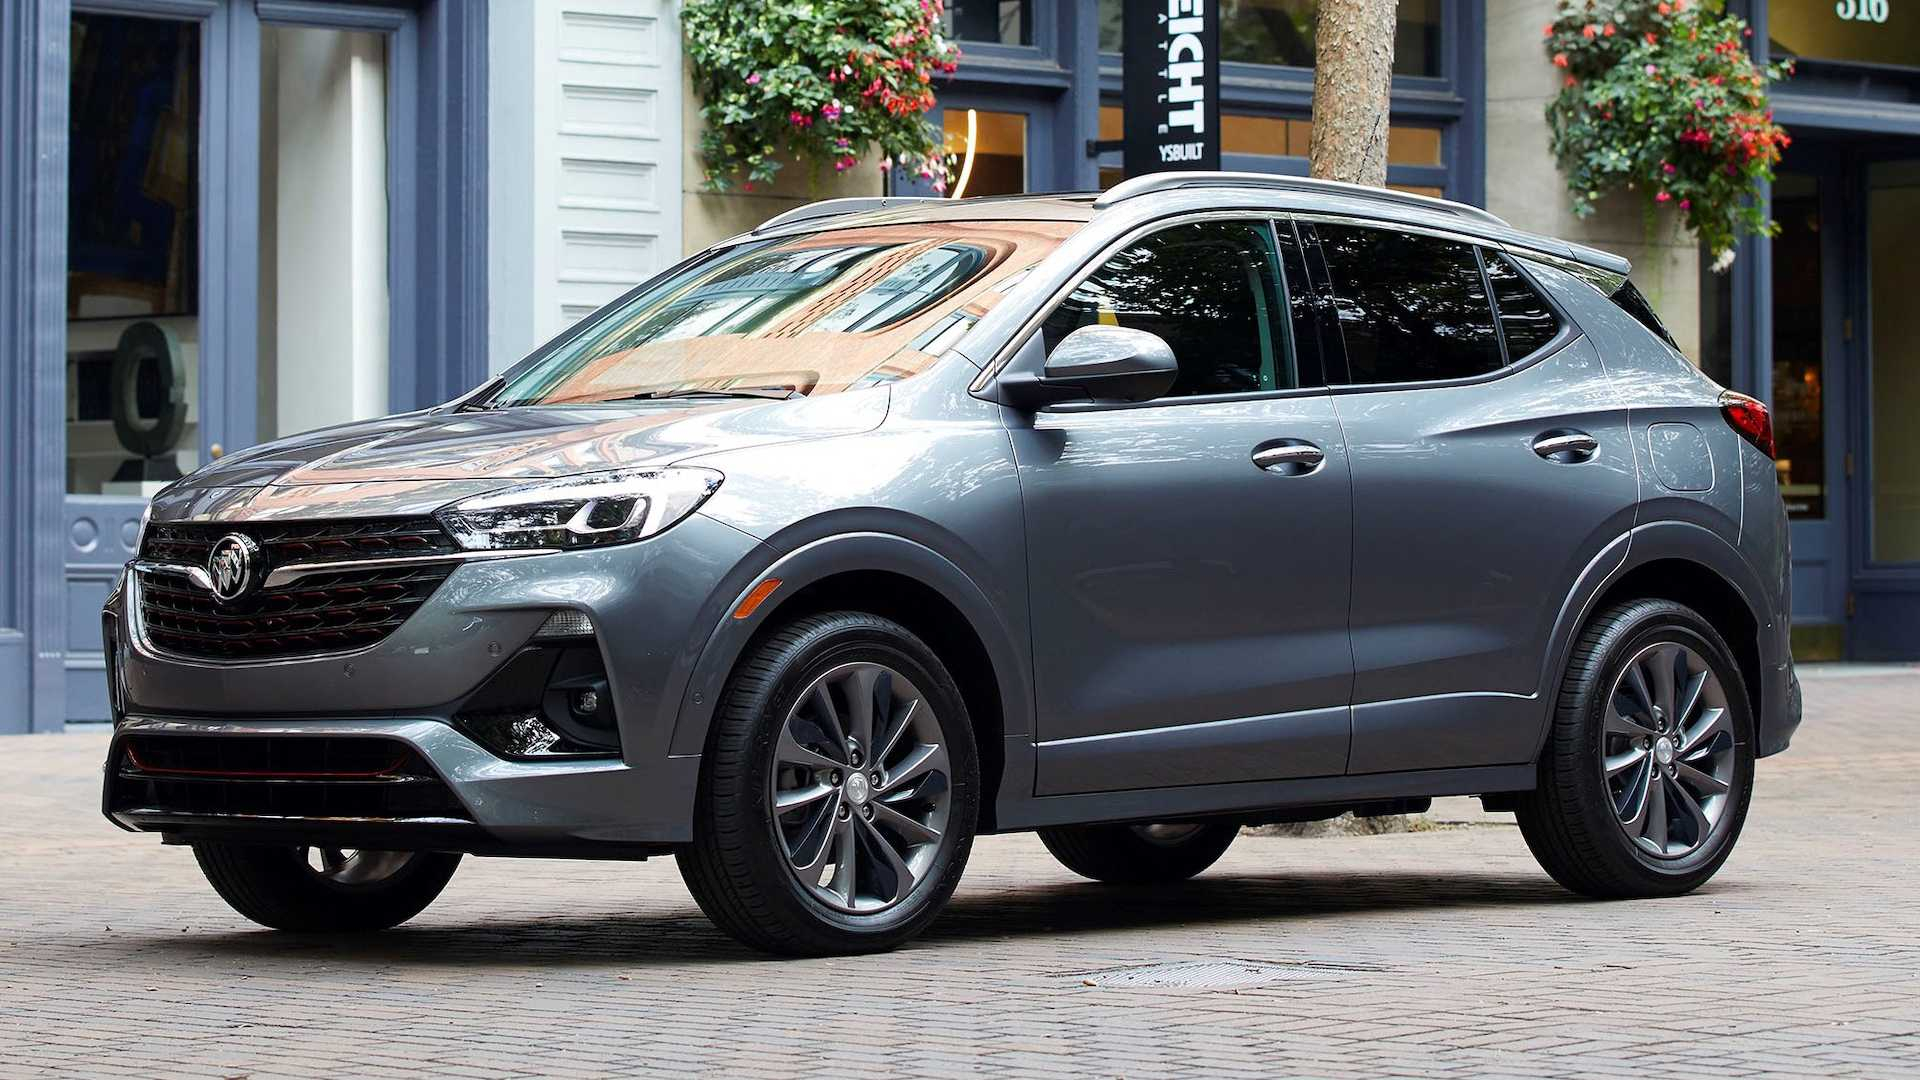 2021 Buick Encore Gx Details Emerge: Styling Tweaks, More Tech New 2022 Buick Encore Gx Review, Dimensions, Price